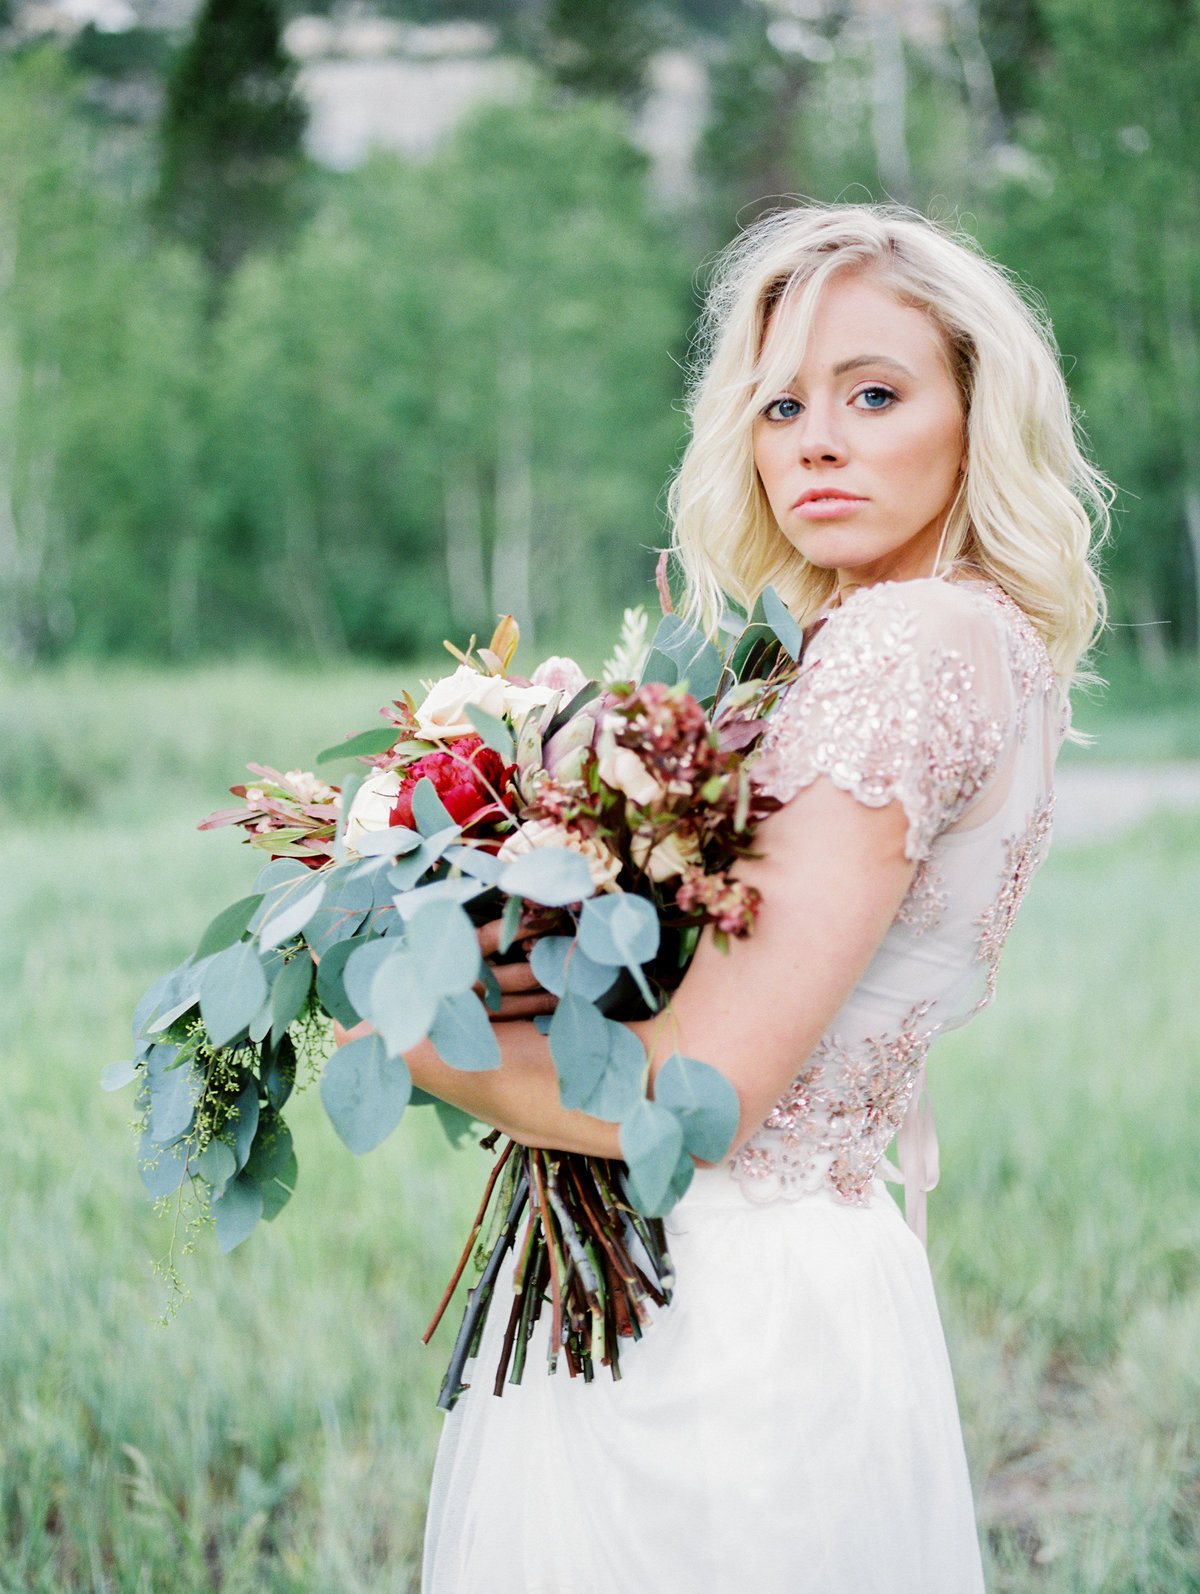 Styled Bridal Portrait with Flowers